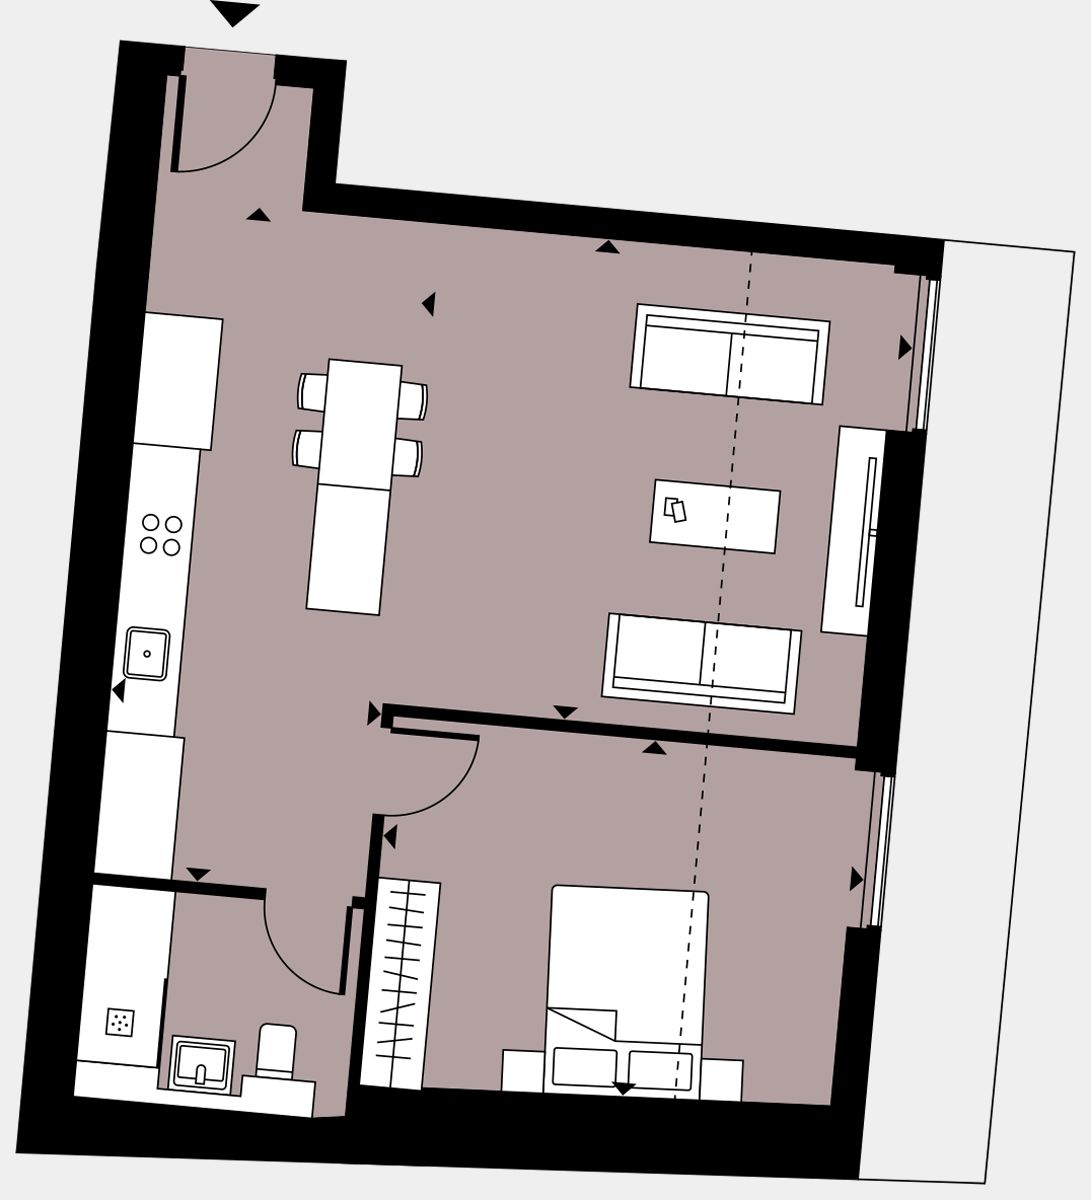 Brigade Court London SE1 Apartment floorplan - L5 38 Davies House